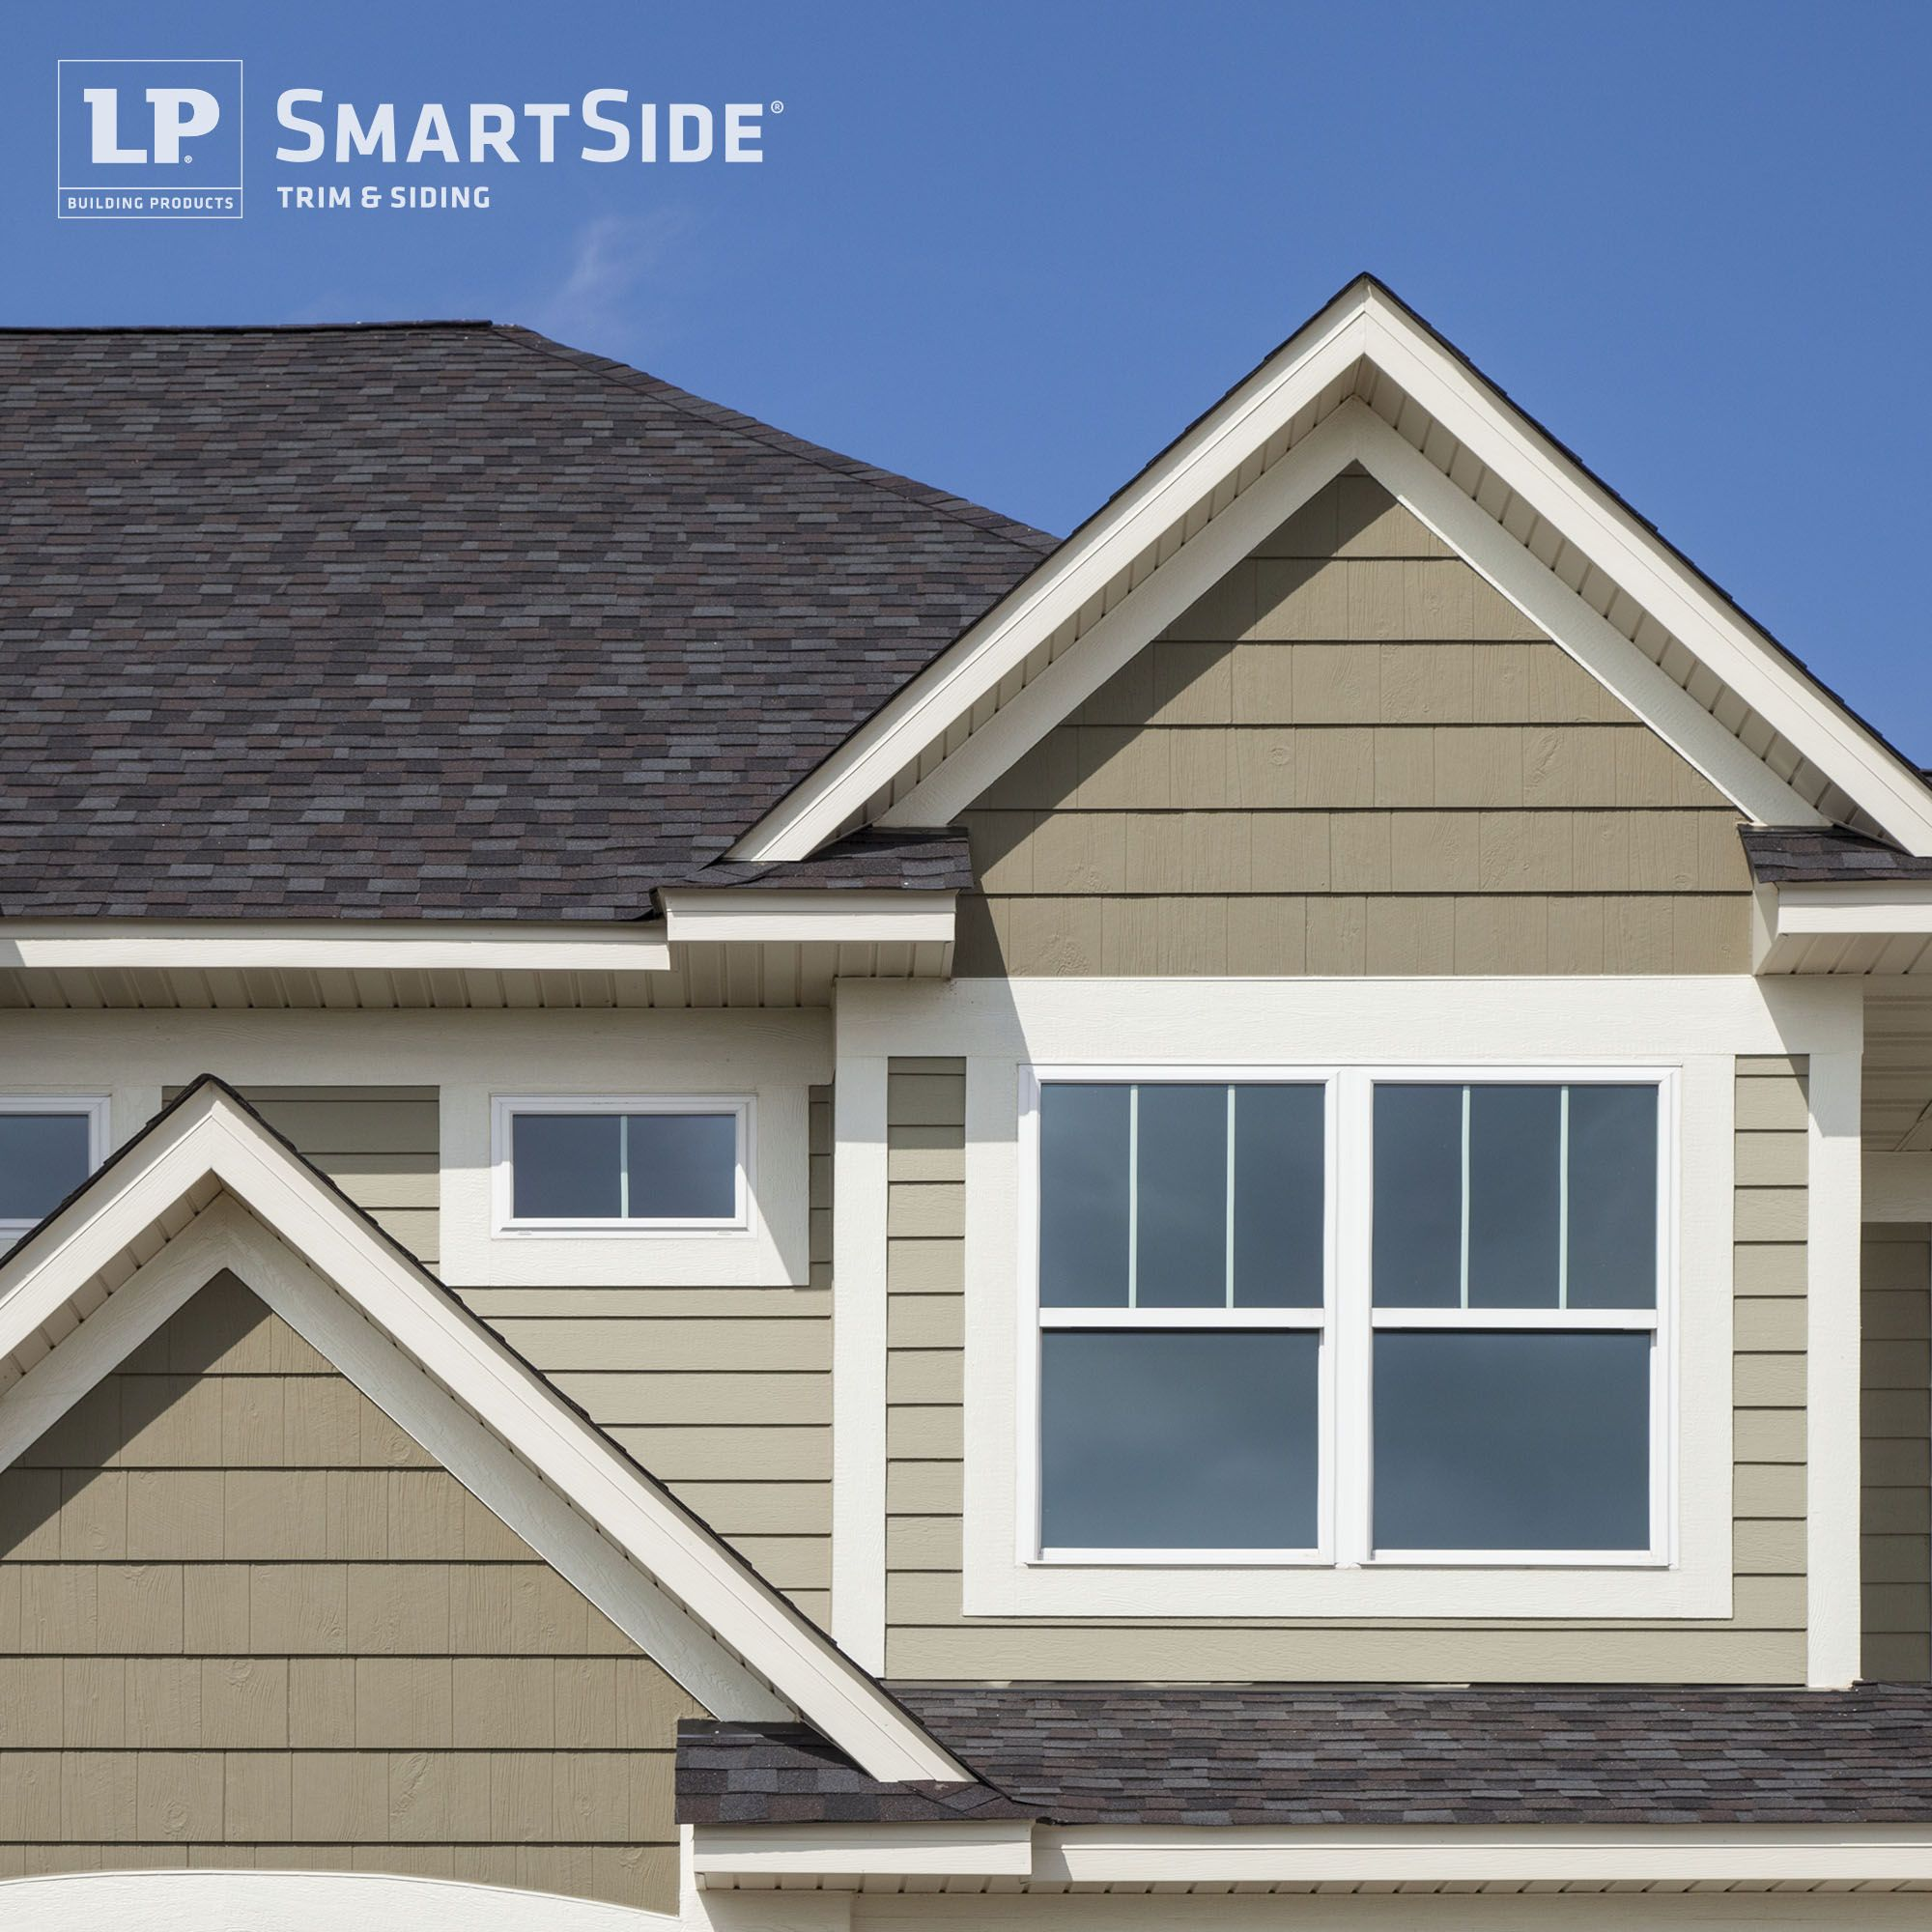 Lp smartside cedar shakes trim and lap siding in neutral for Lp shake siding